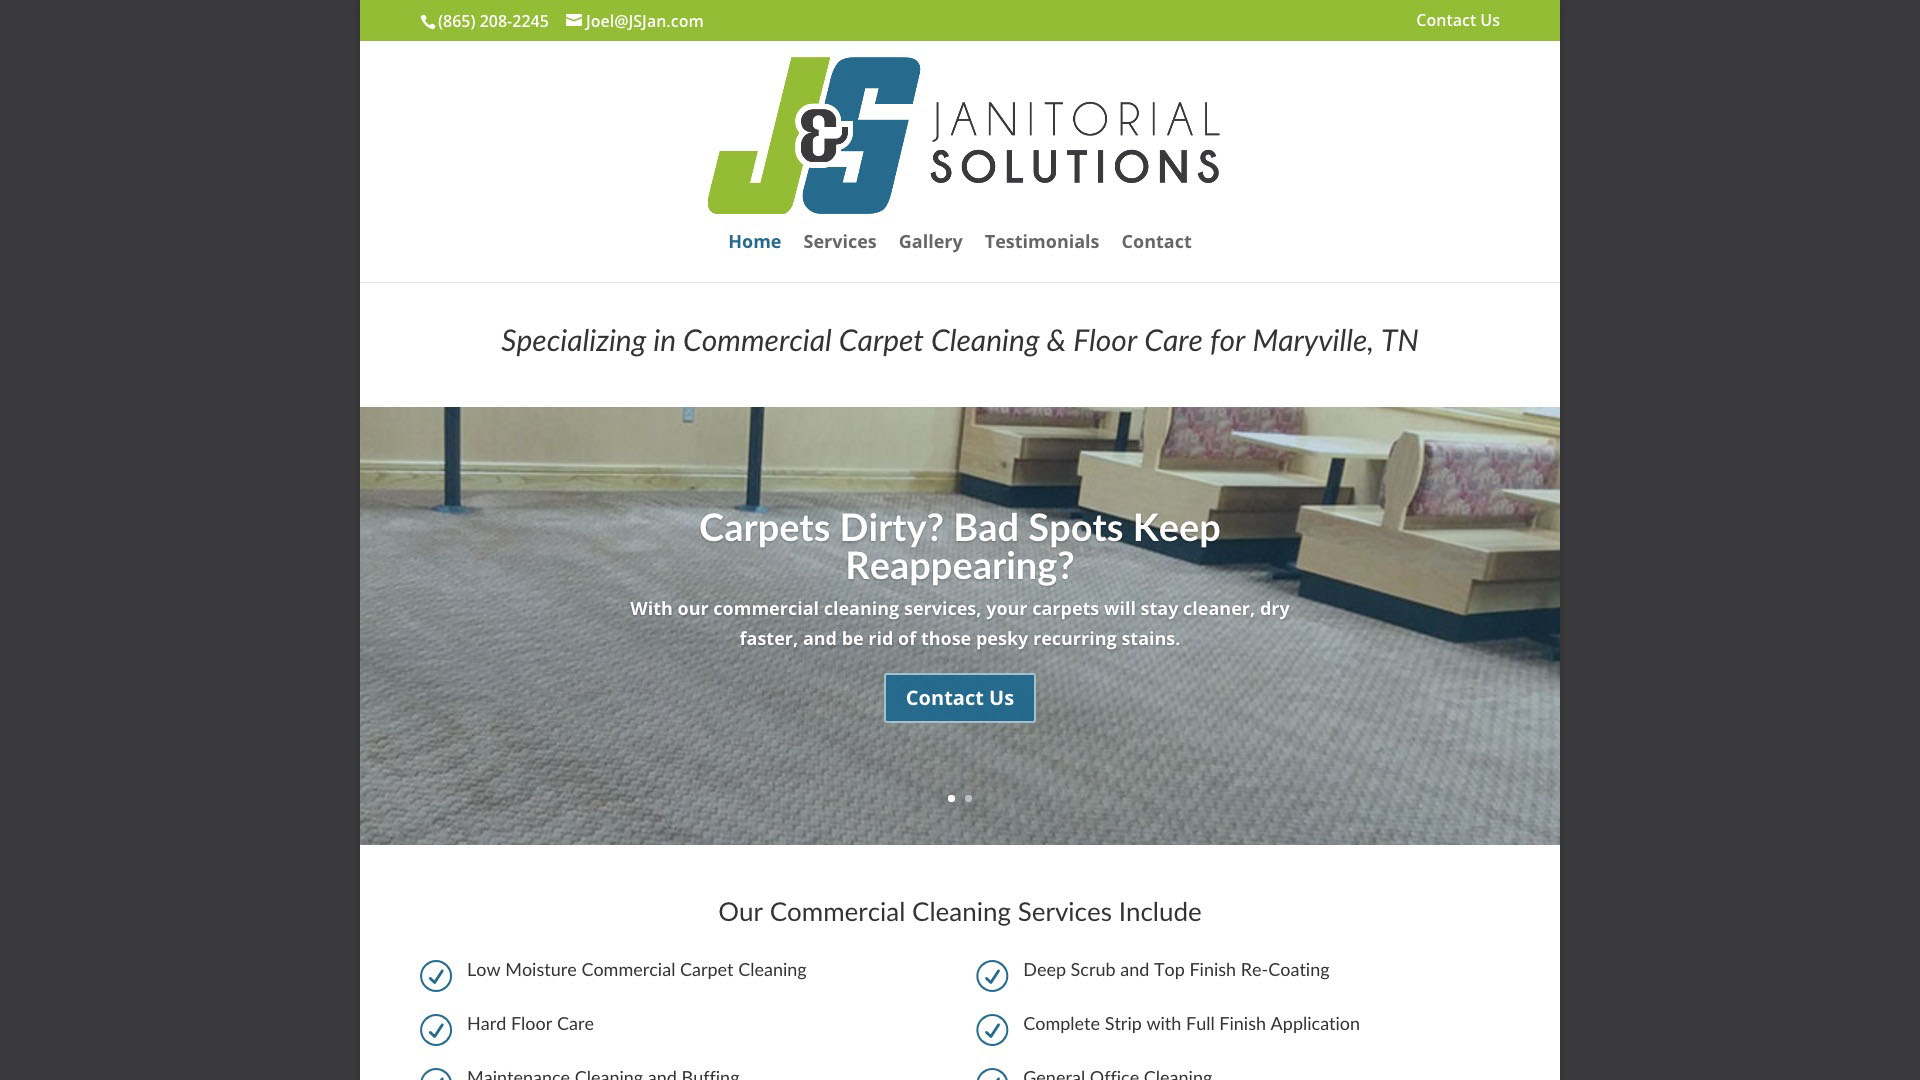 J&S Janitorial Solutions Website Design